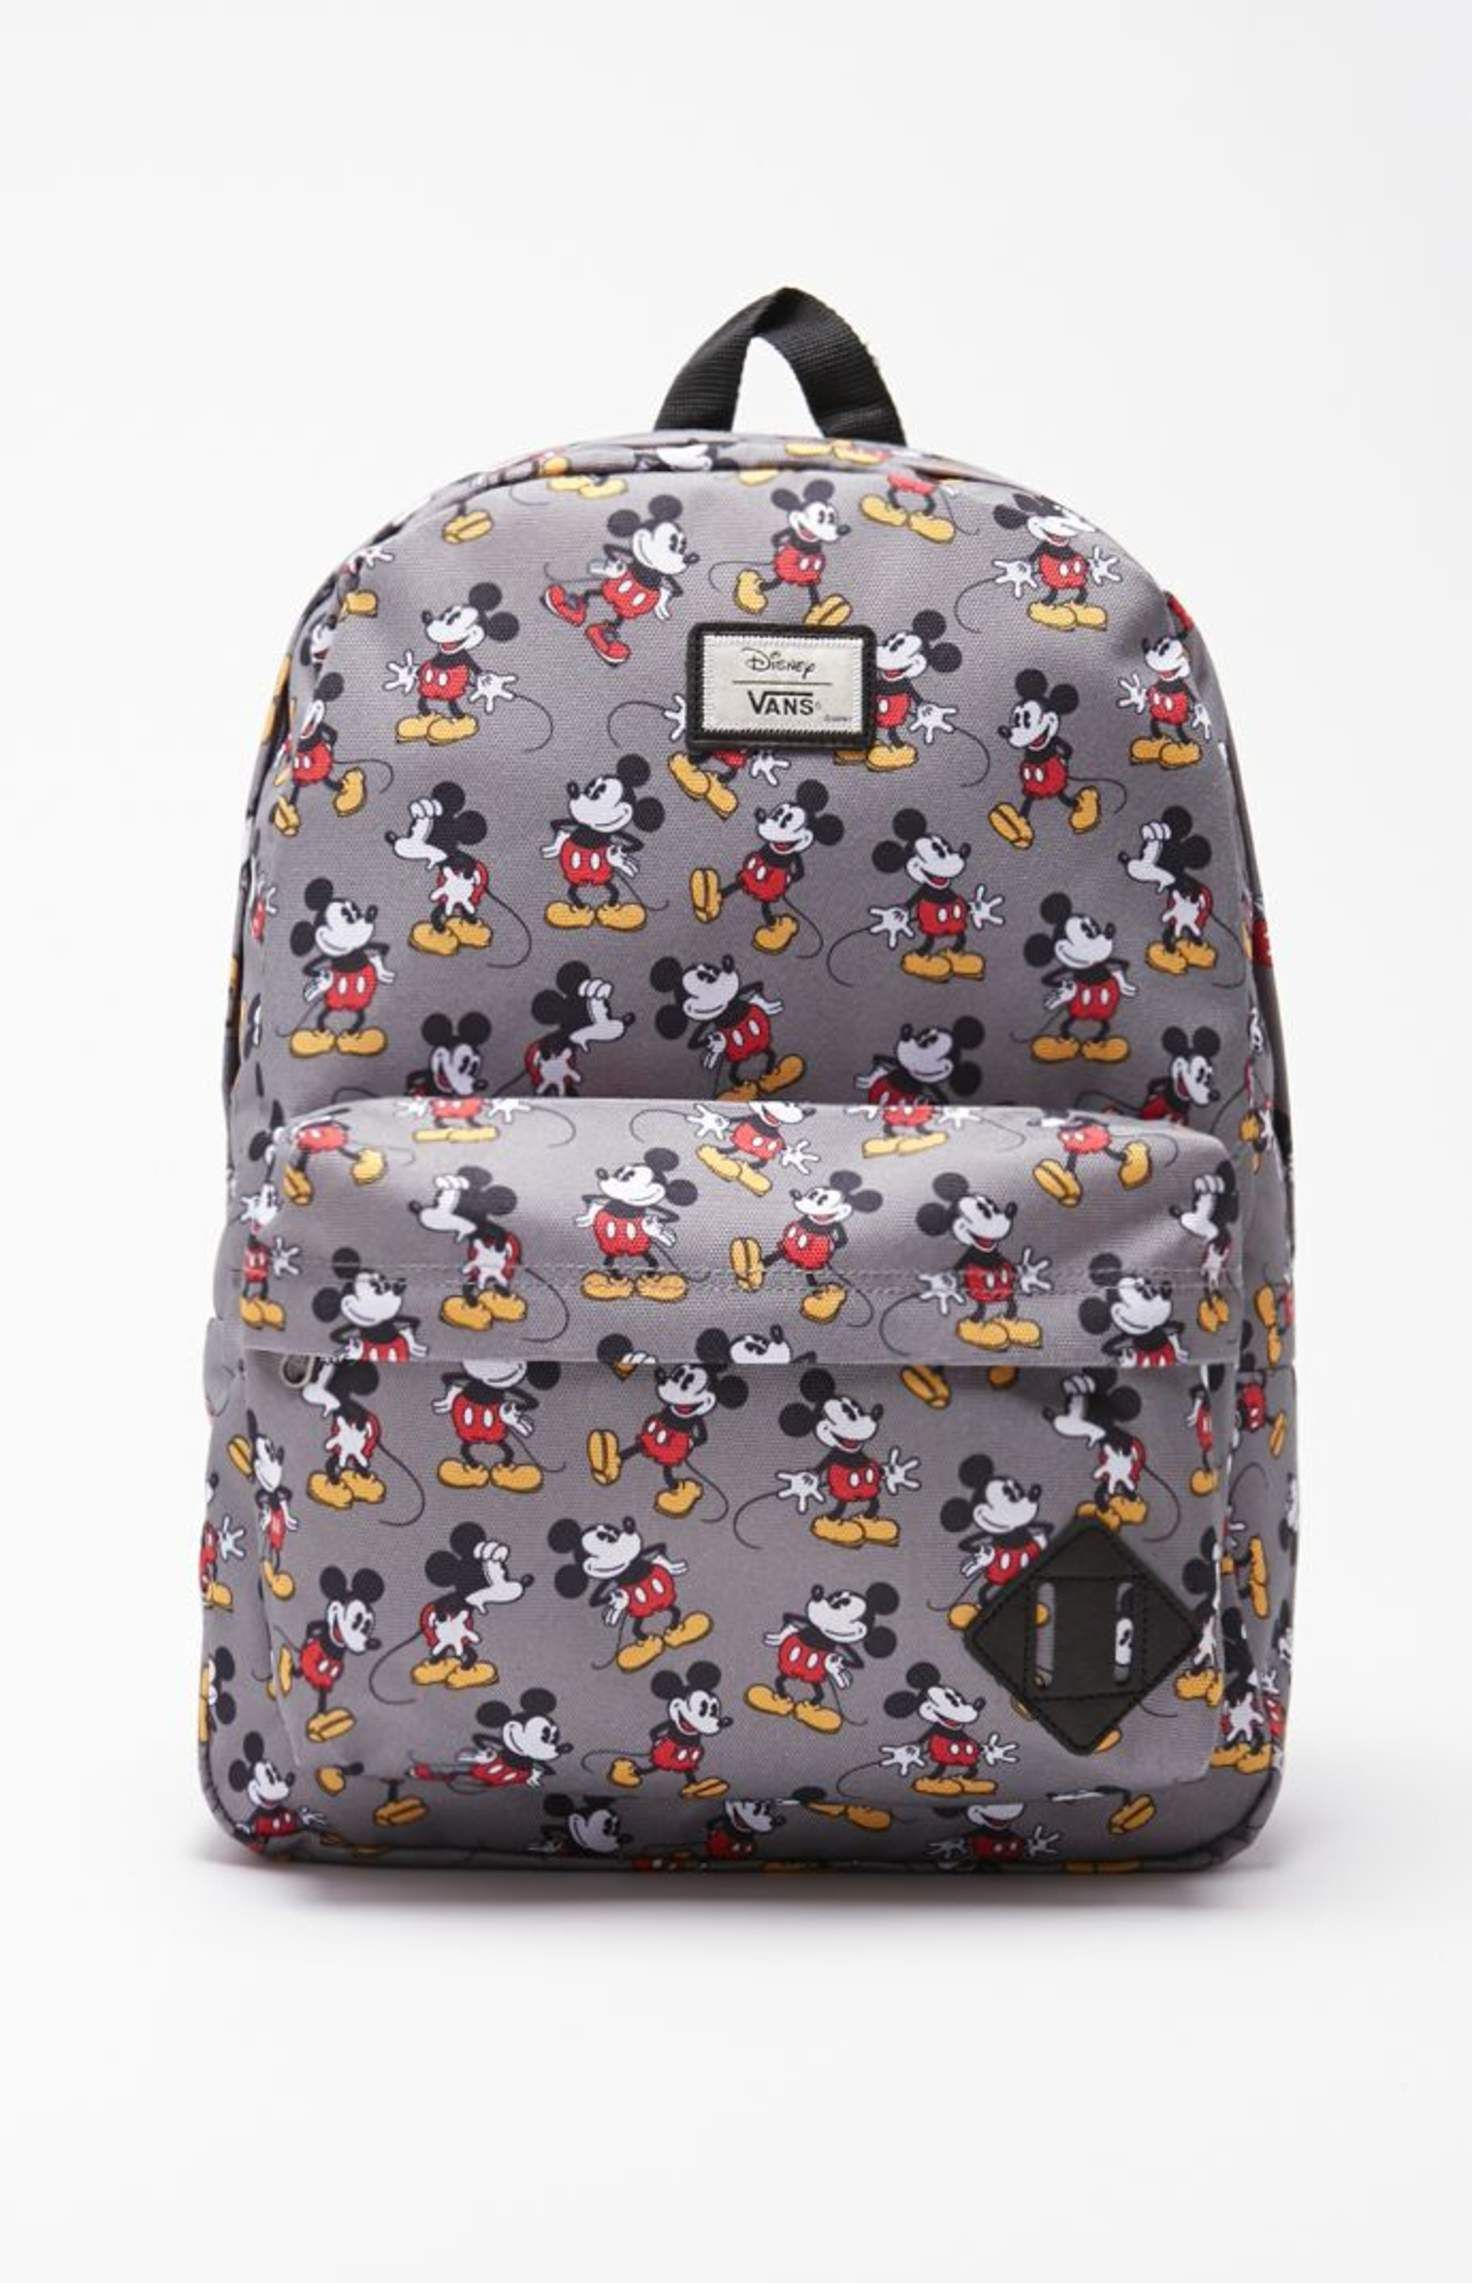 4becd590e50 Vans - Disney Old Skool II Mickey Mouse School Backpack - Mens Backpacks -  Gray - NOSZ